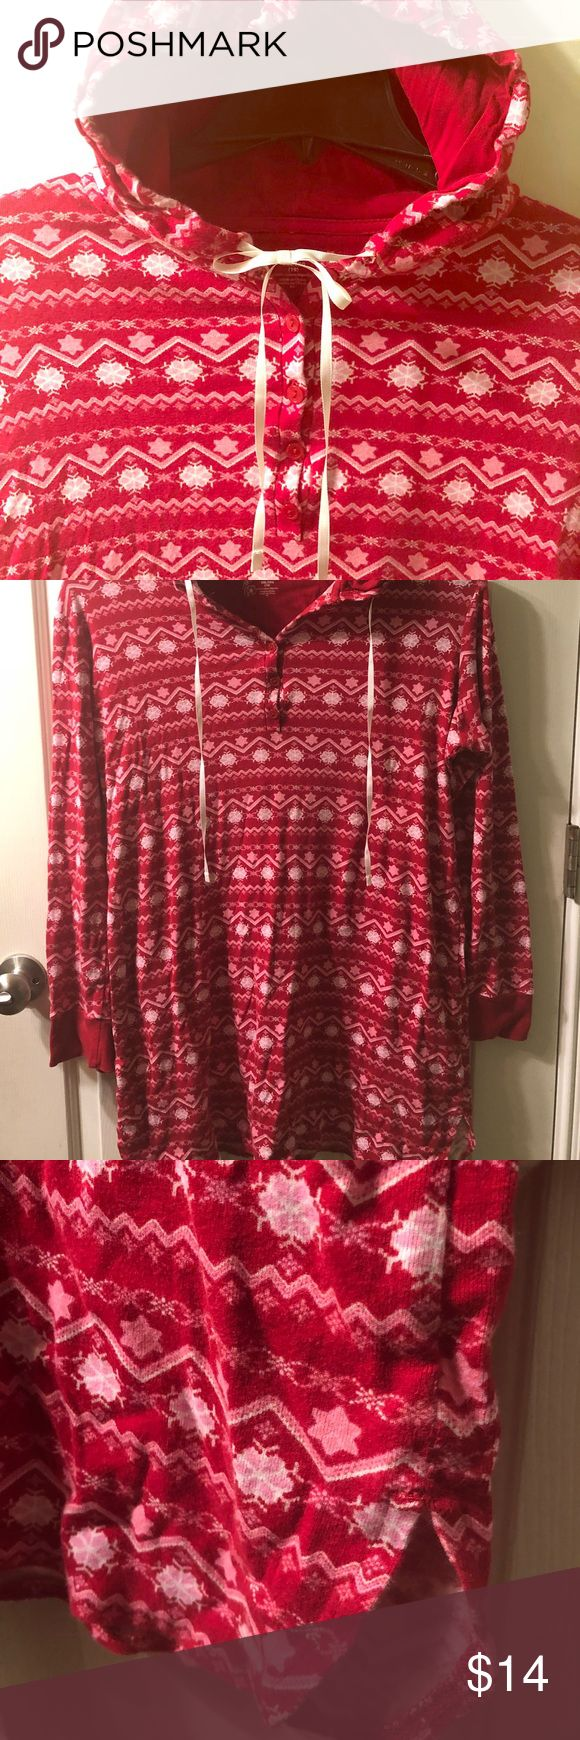 Red hooded snowflake Christmas nightgown pajamas Sz. XXL (19) I would say could fit sz. XL Super cute and comfy it is just too big for me, worn maybe twice and washed. In great condition to get cozy by the fire 🔥 during the winter months. Intimates & Sleepwear Pajamas